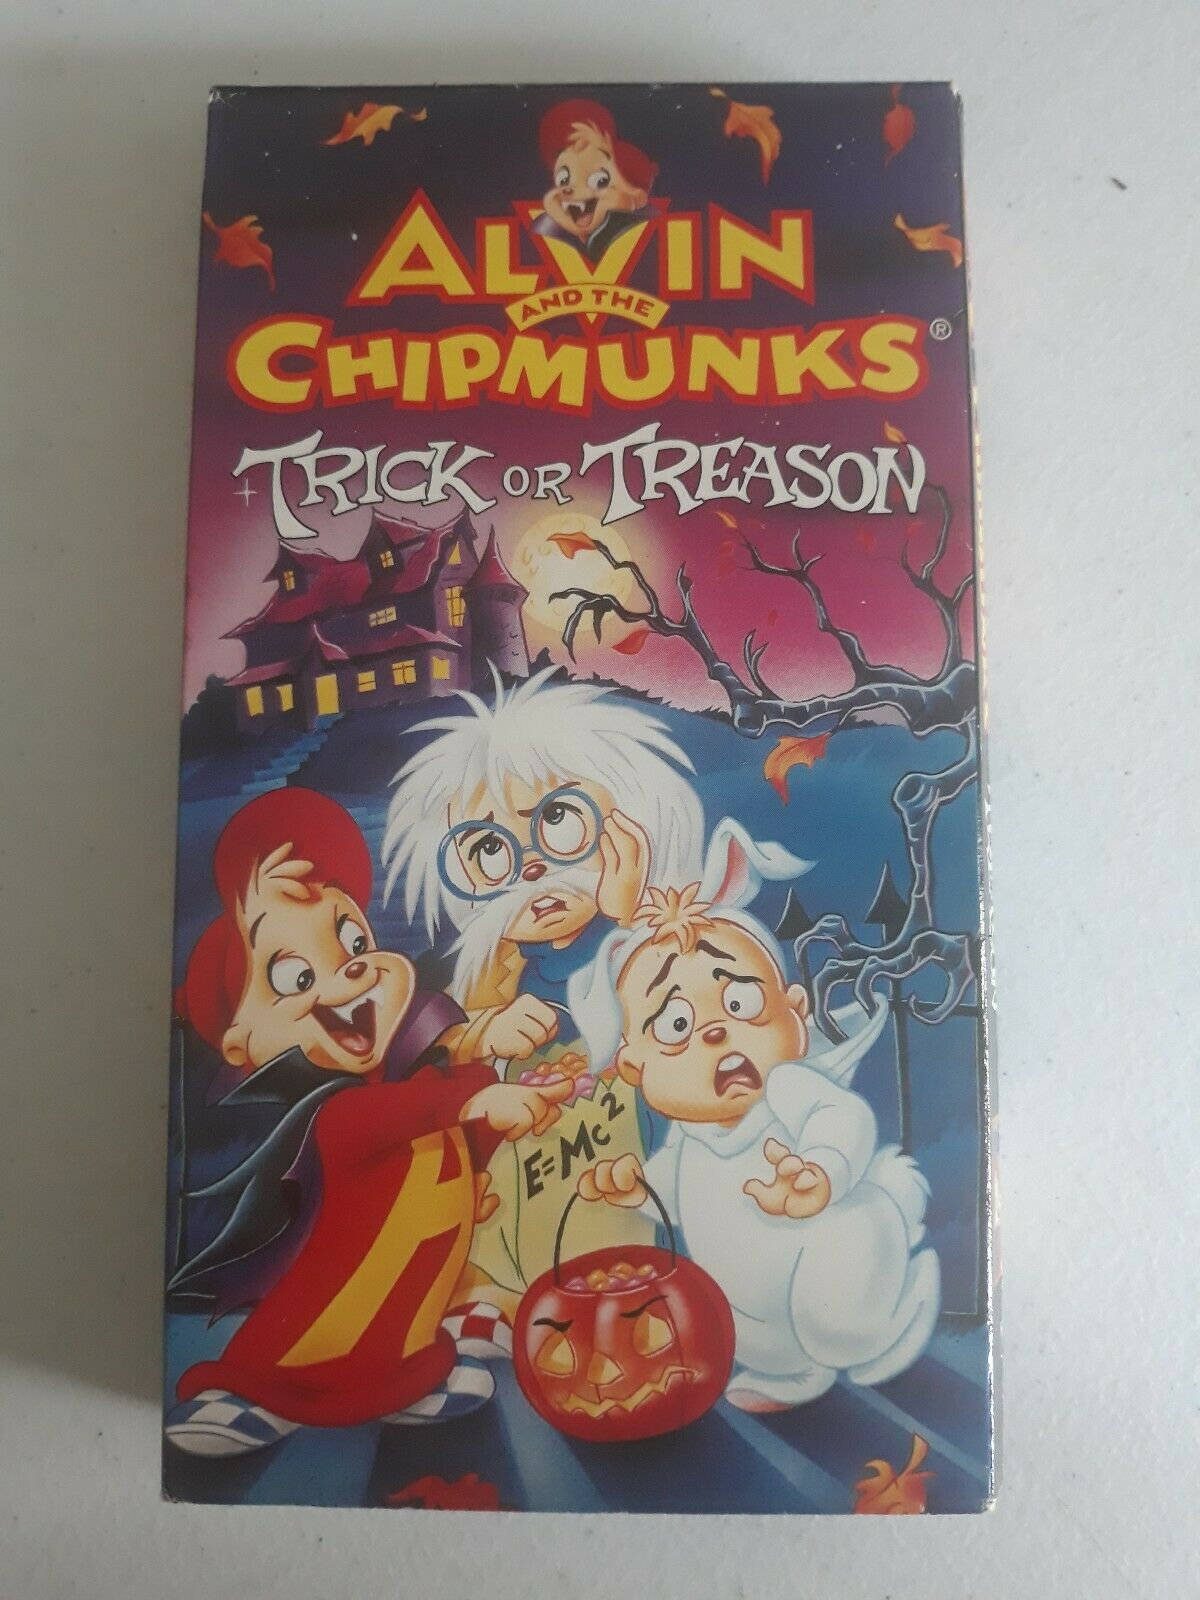 Alvin and the Chipmunks: Trick or Treason (1995 VHS)